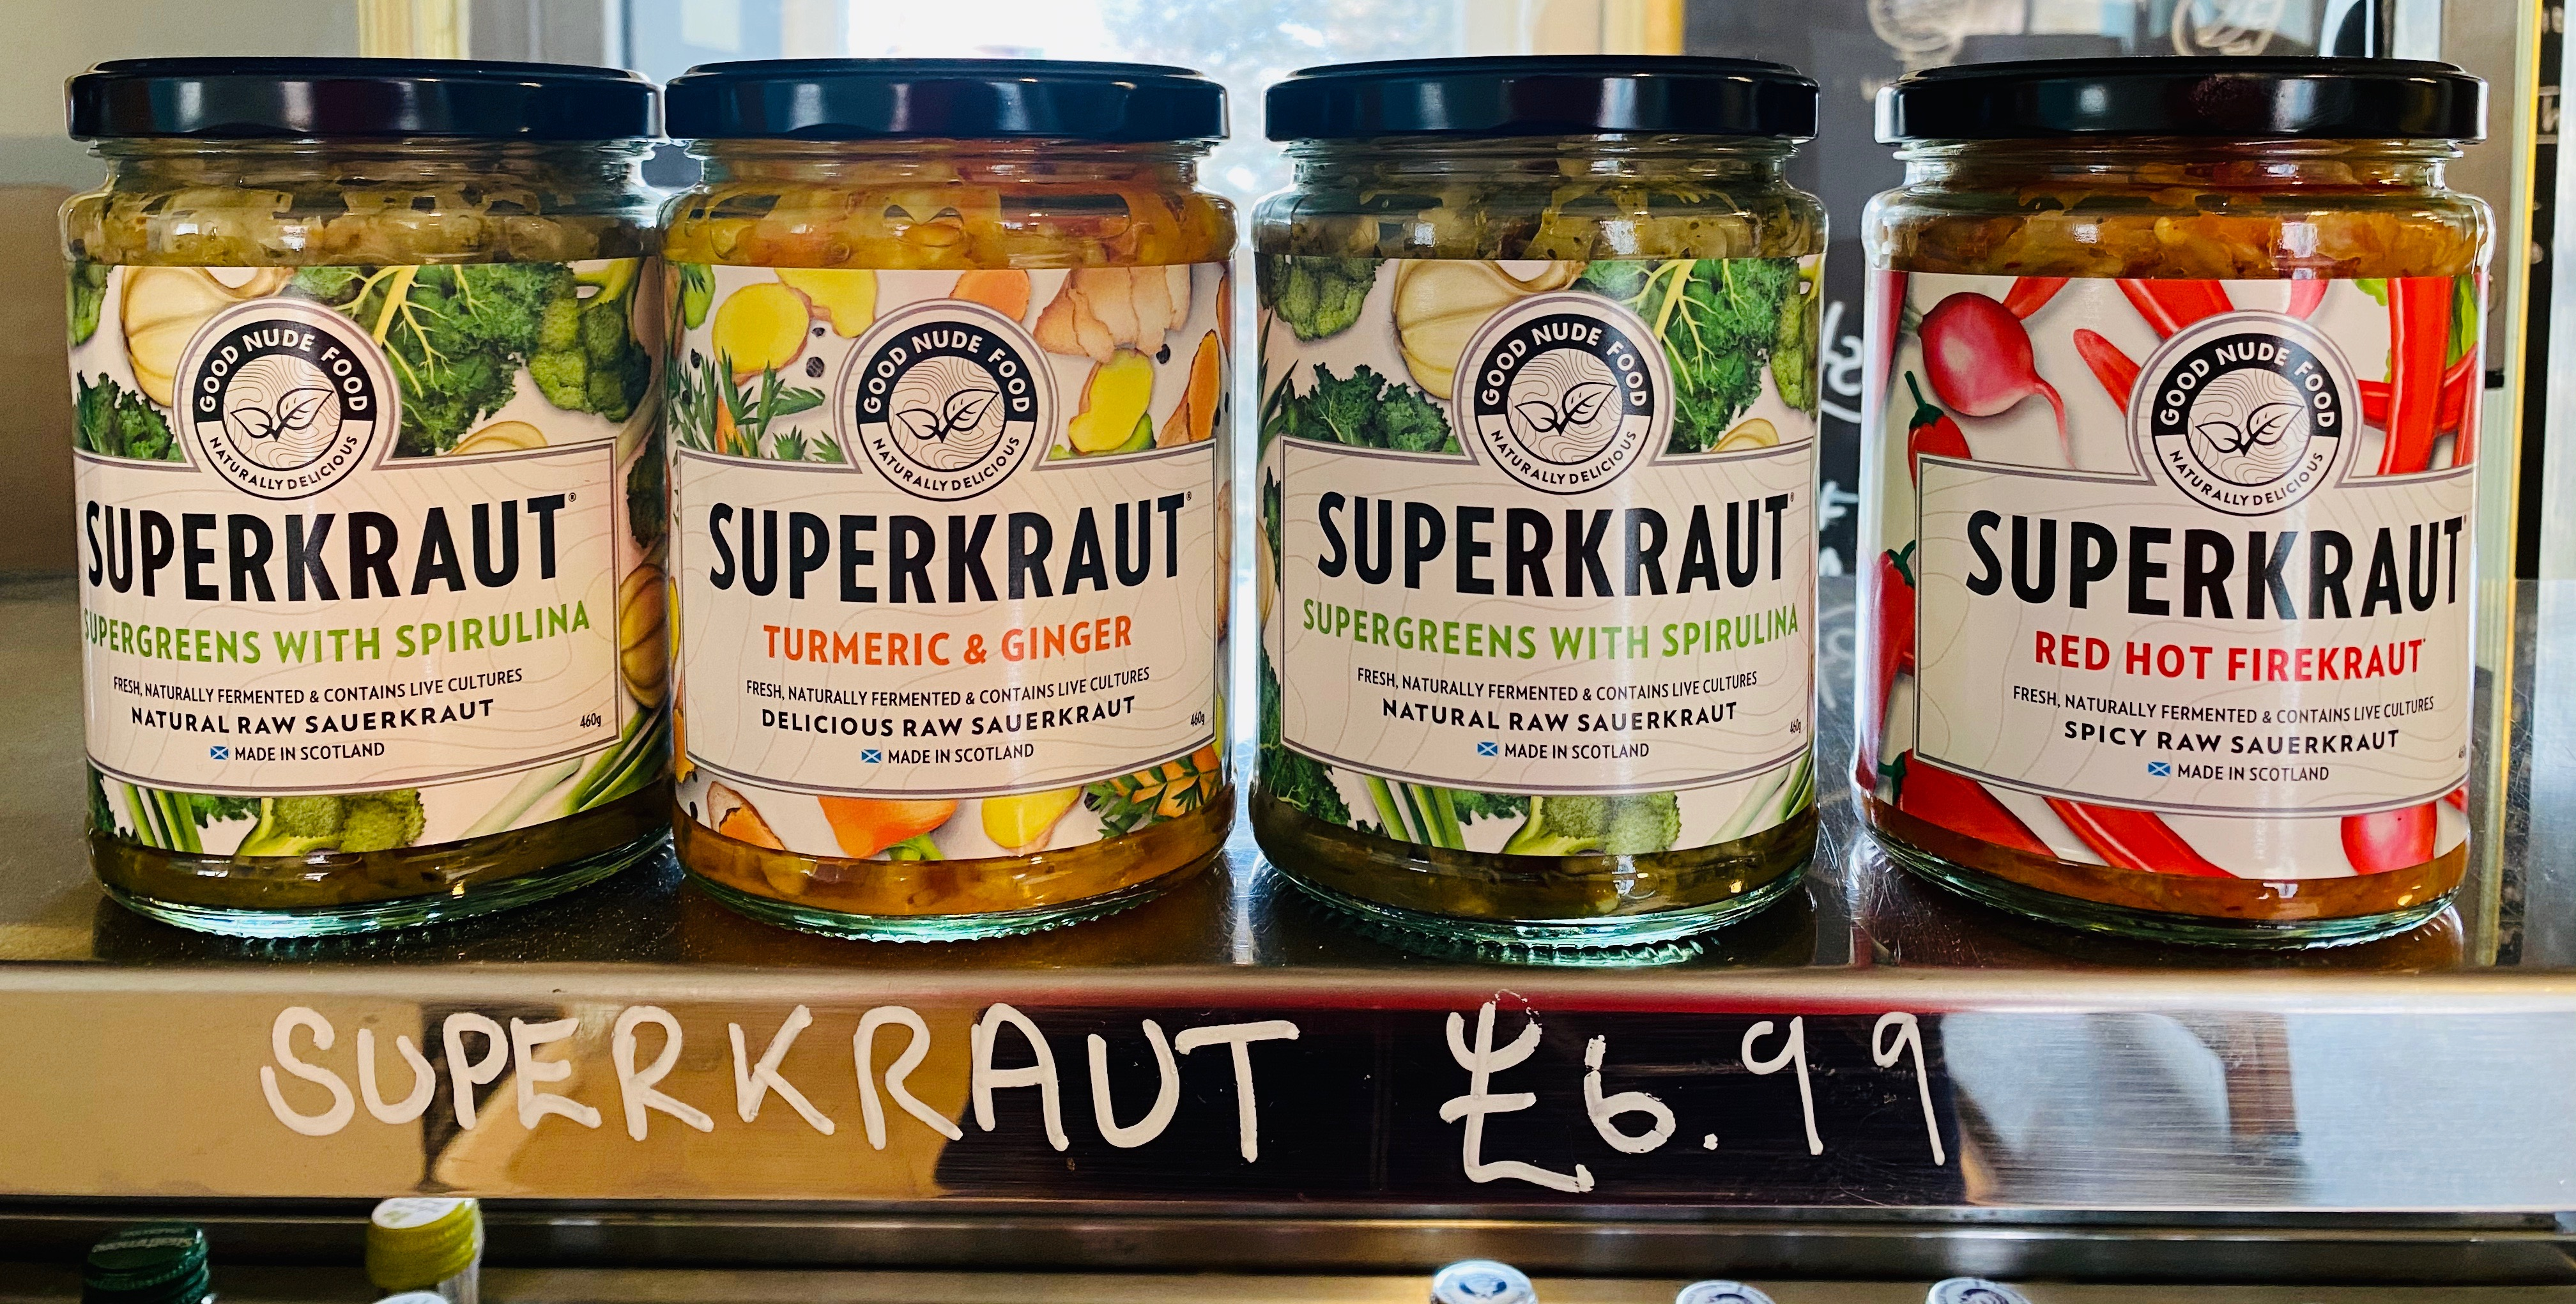 Superkraut